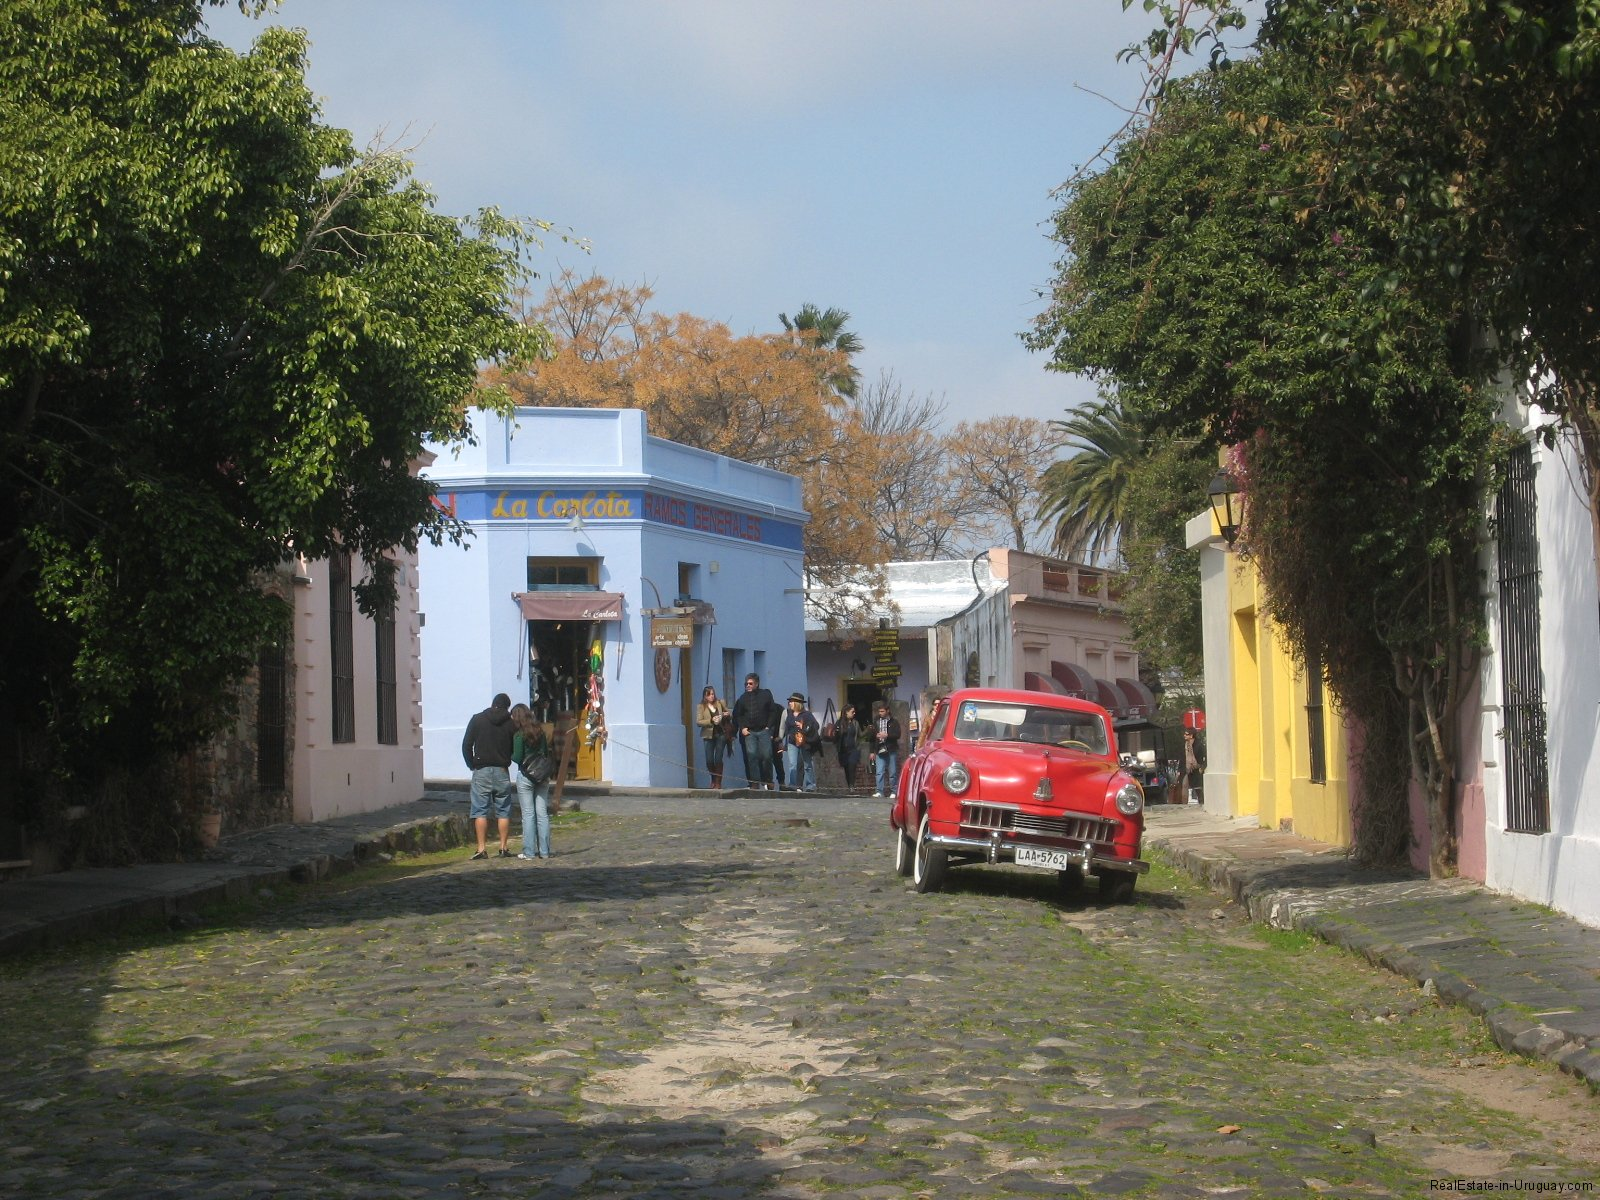 The-Historic-District-of-Colonia